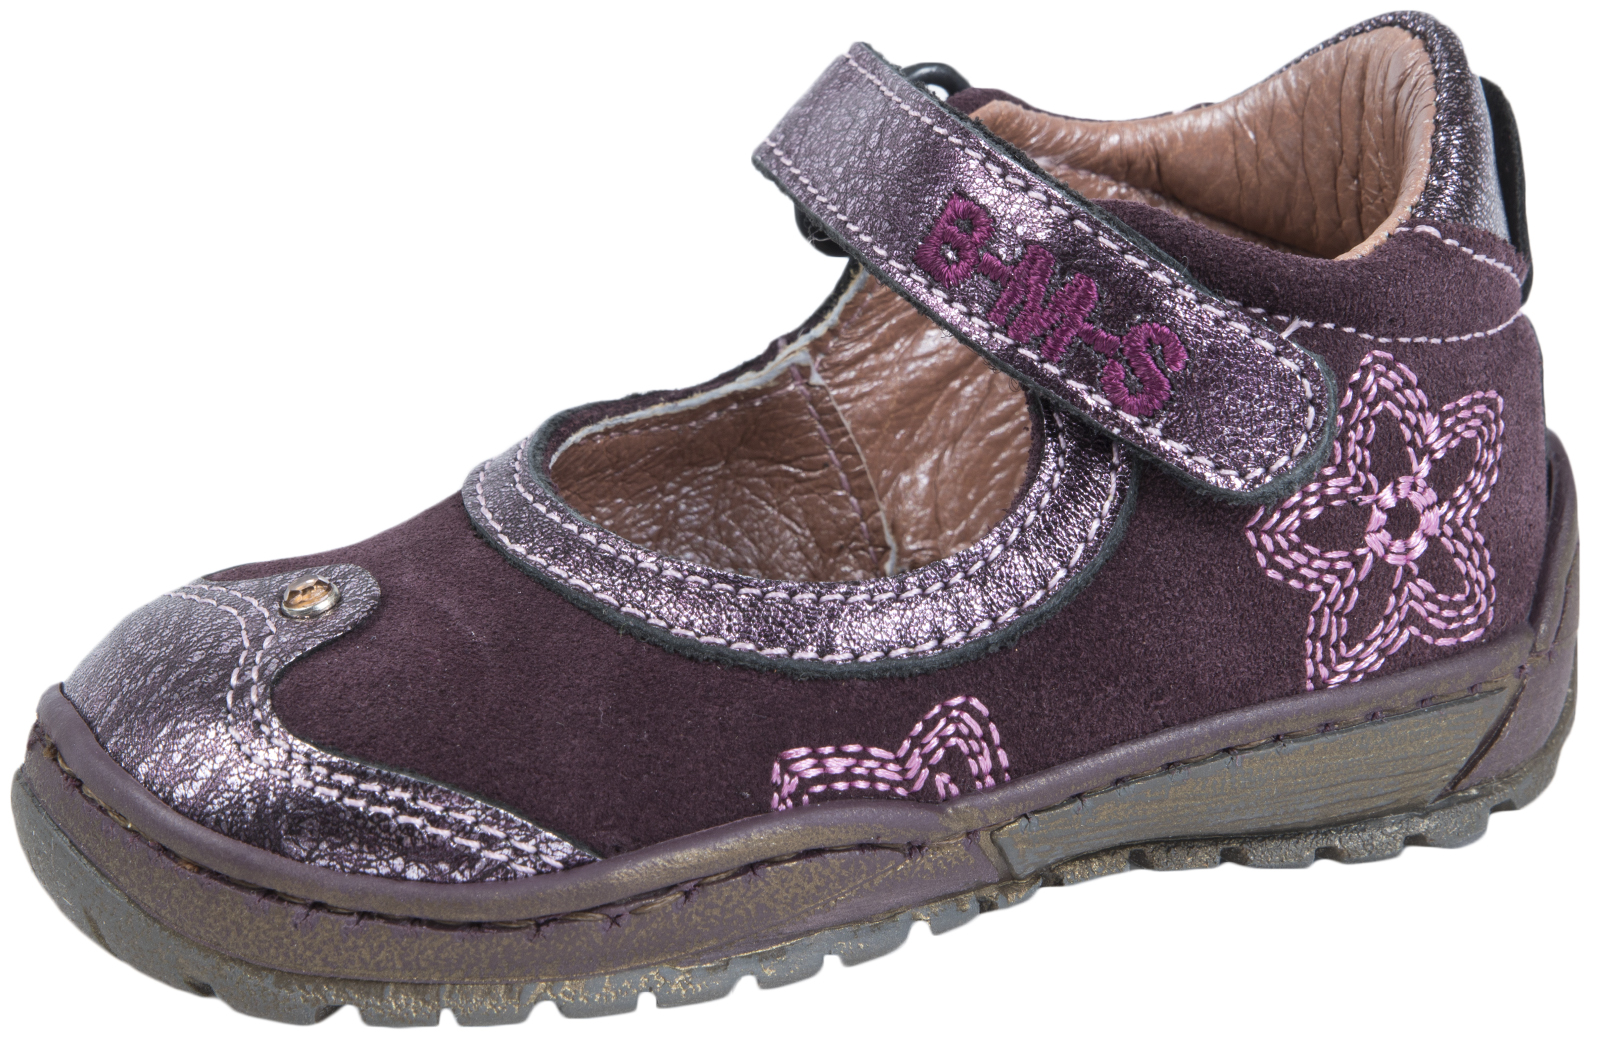 BMS Buckle My Shoe Girls Leather Shoes Kids Easy Touch Fastening Party Shoes